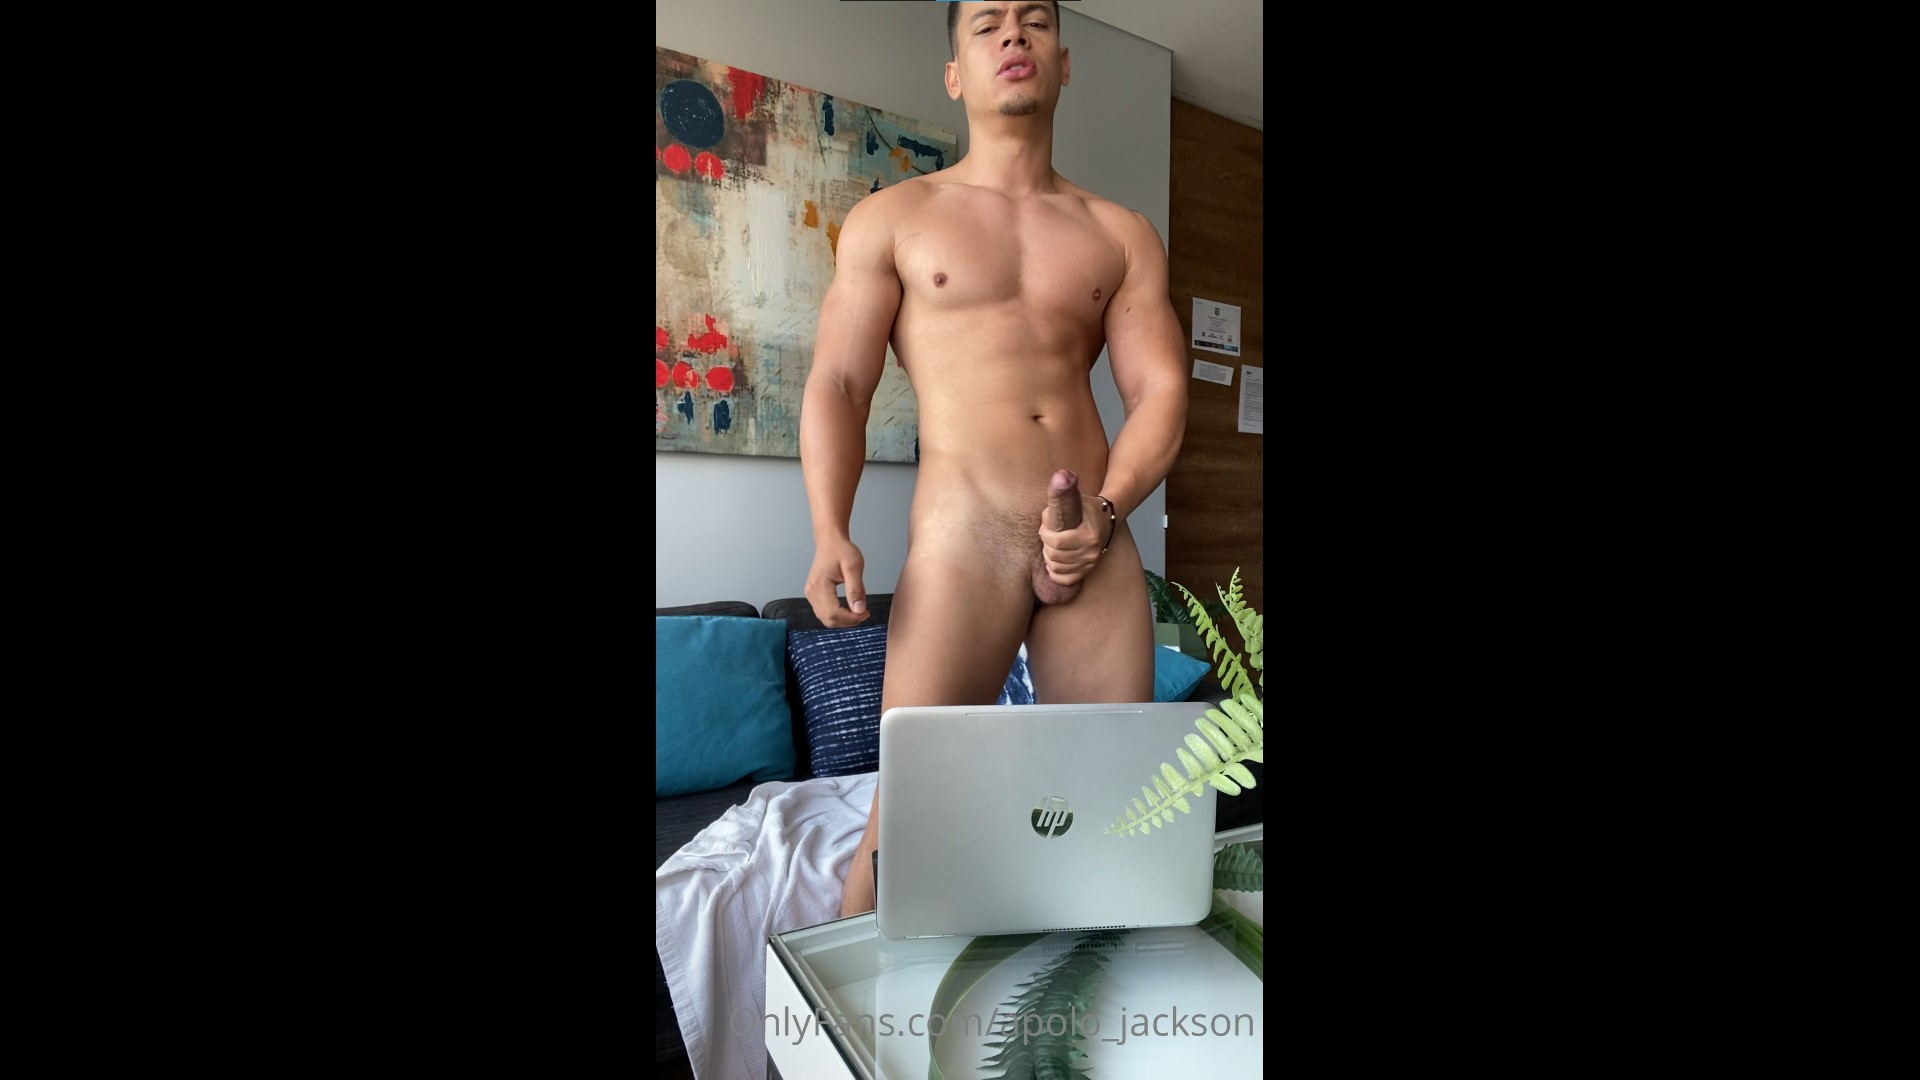 Jerking my cock while watching porn - apolo_jackson